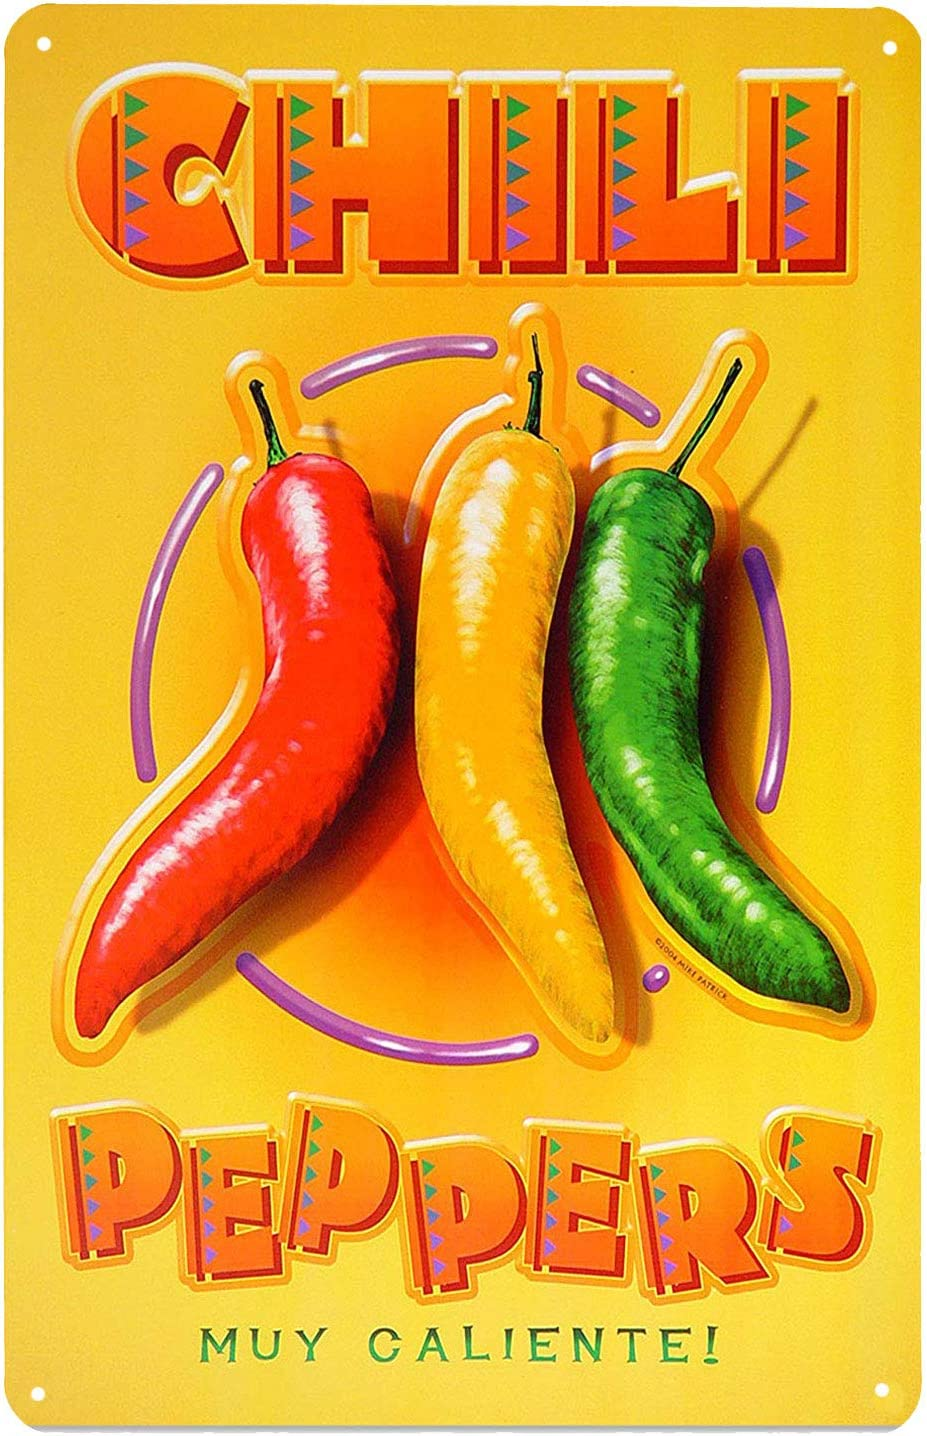 ARTCLUB Chili Peppers Spicy Food Muy Caliente, Metal Tin Sign, Art Plaque Poster Kitchen Home Wall Decor